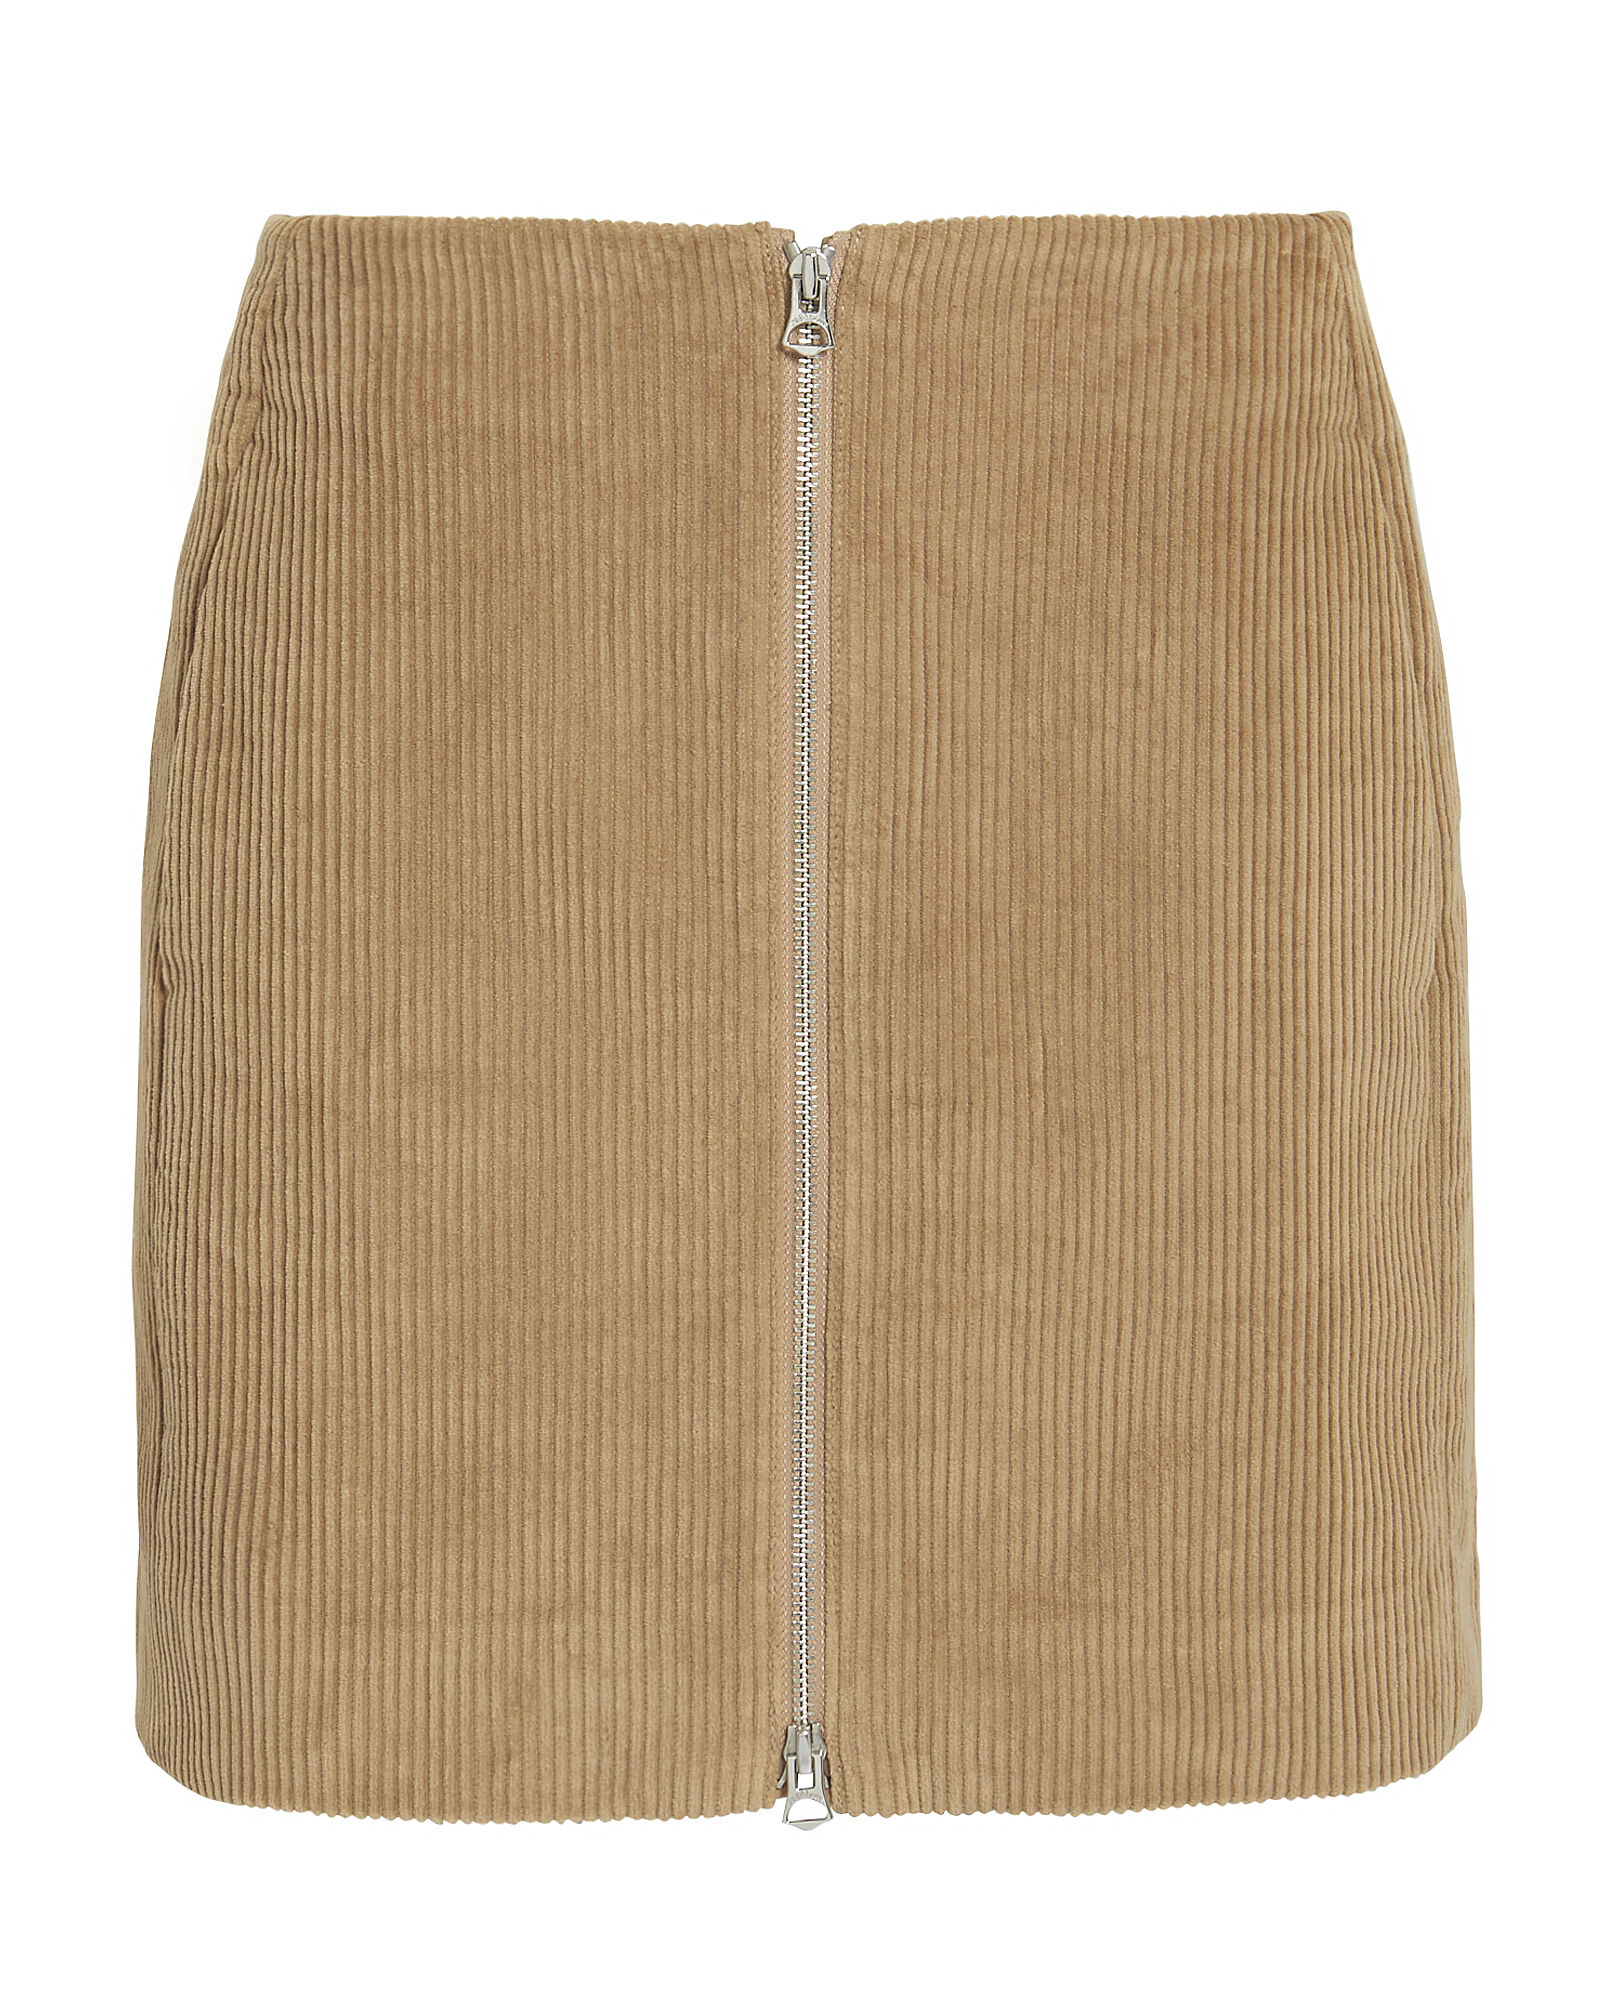 Heidi Corduroy Mini Skirt, BROWN, hi-res